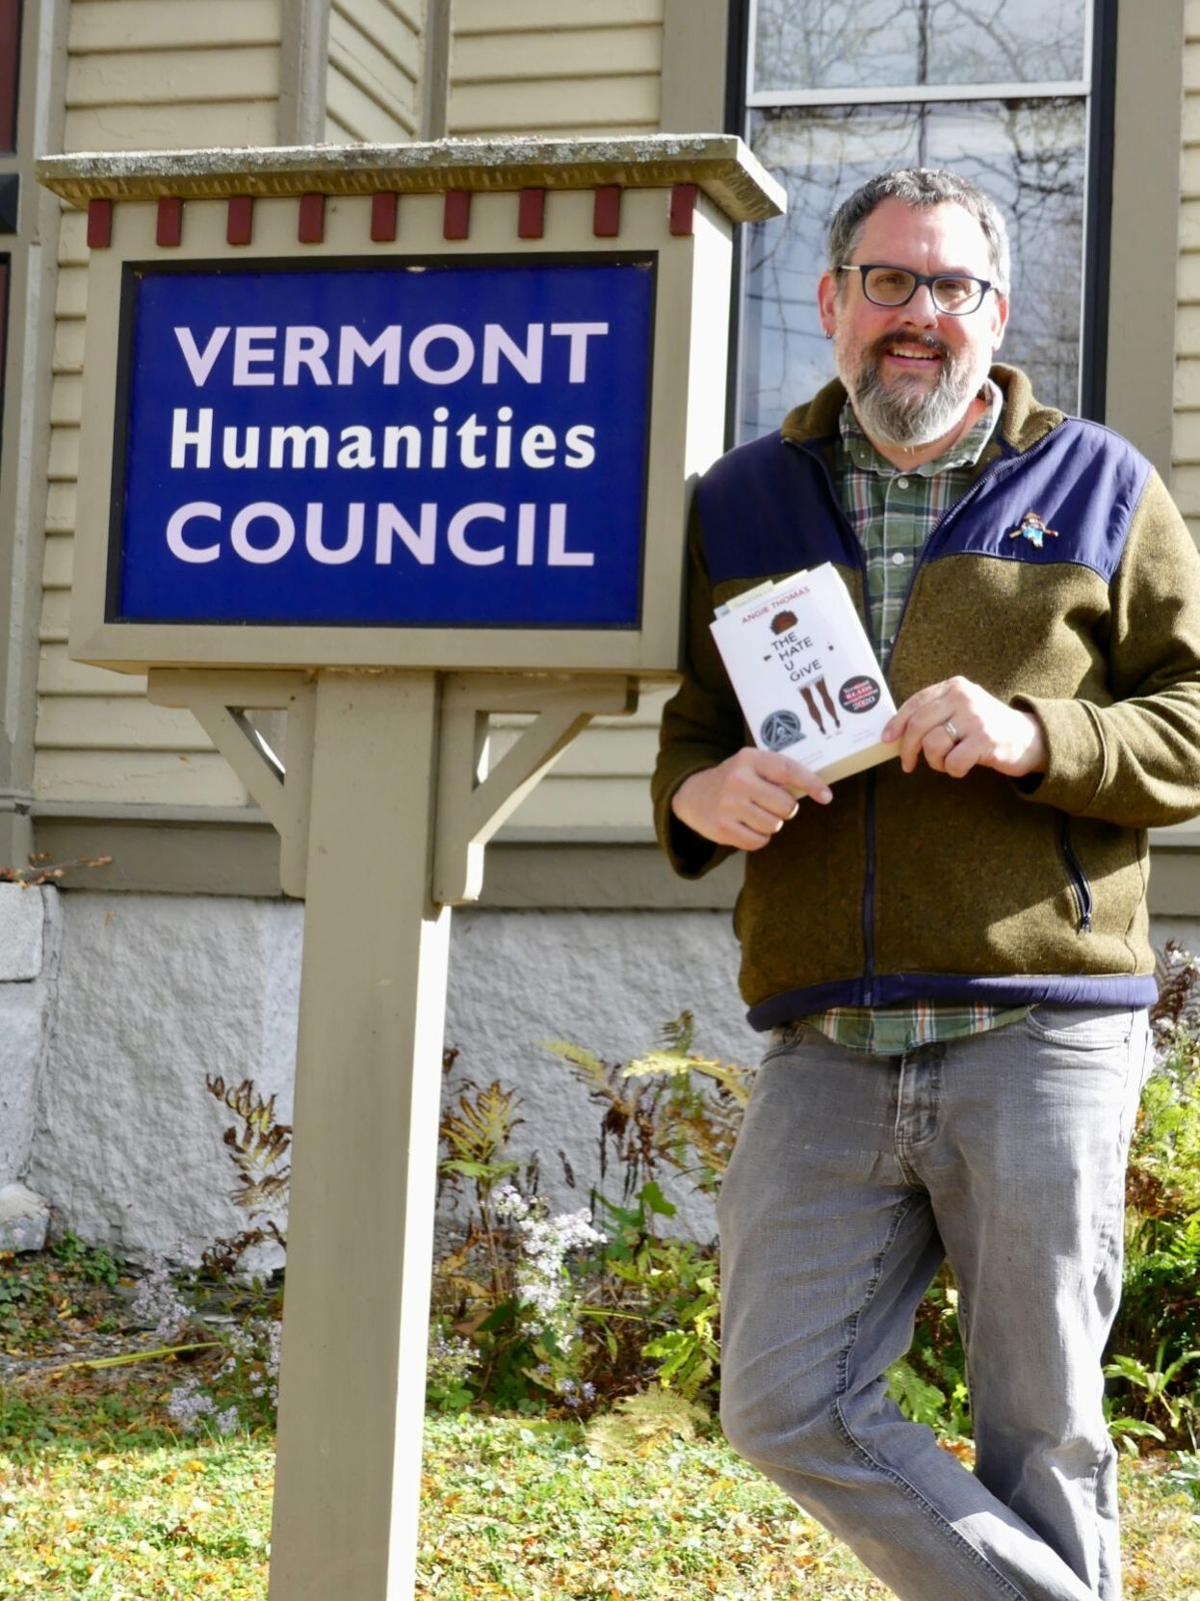 Facing Race Issues: Vermont Humanities Council provides a learning moment